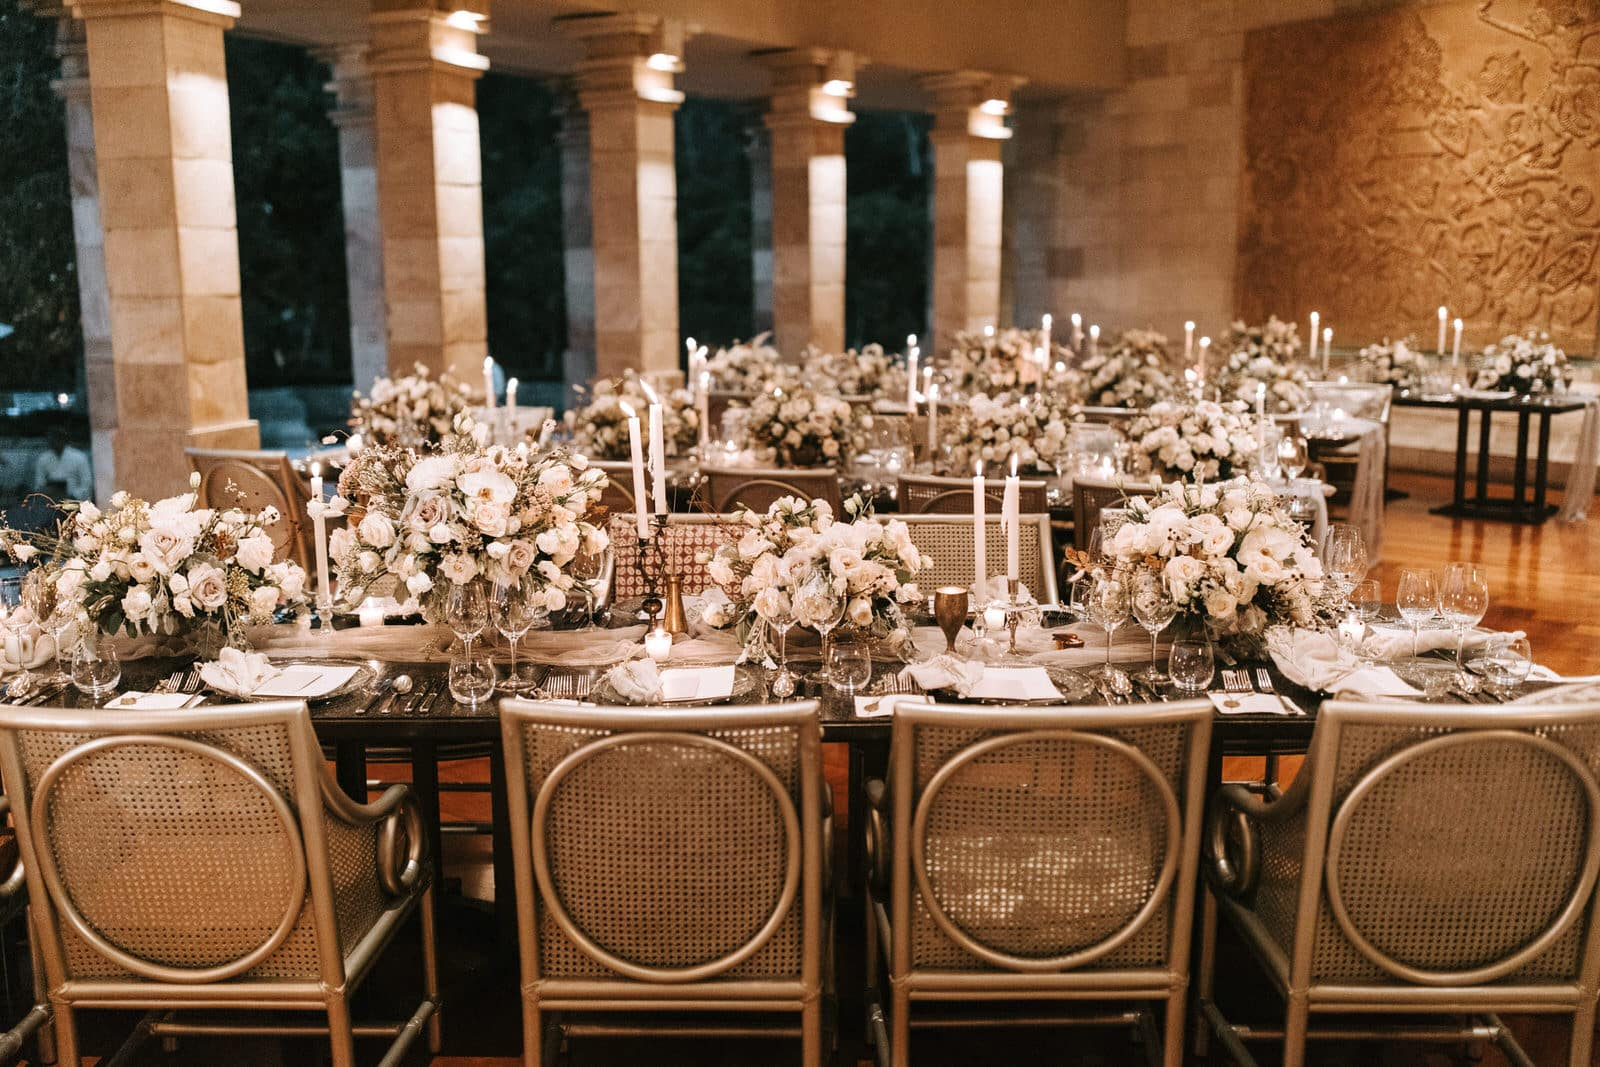 This picture shows a room filled with wedding tables and chairs.